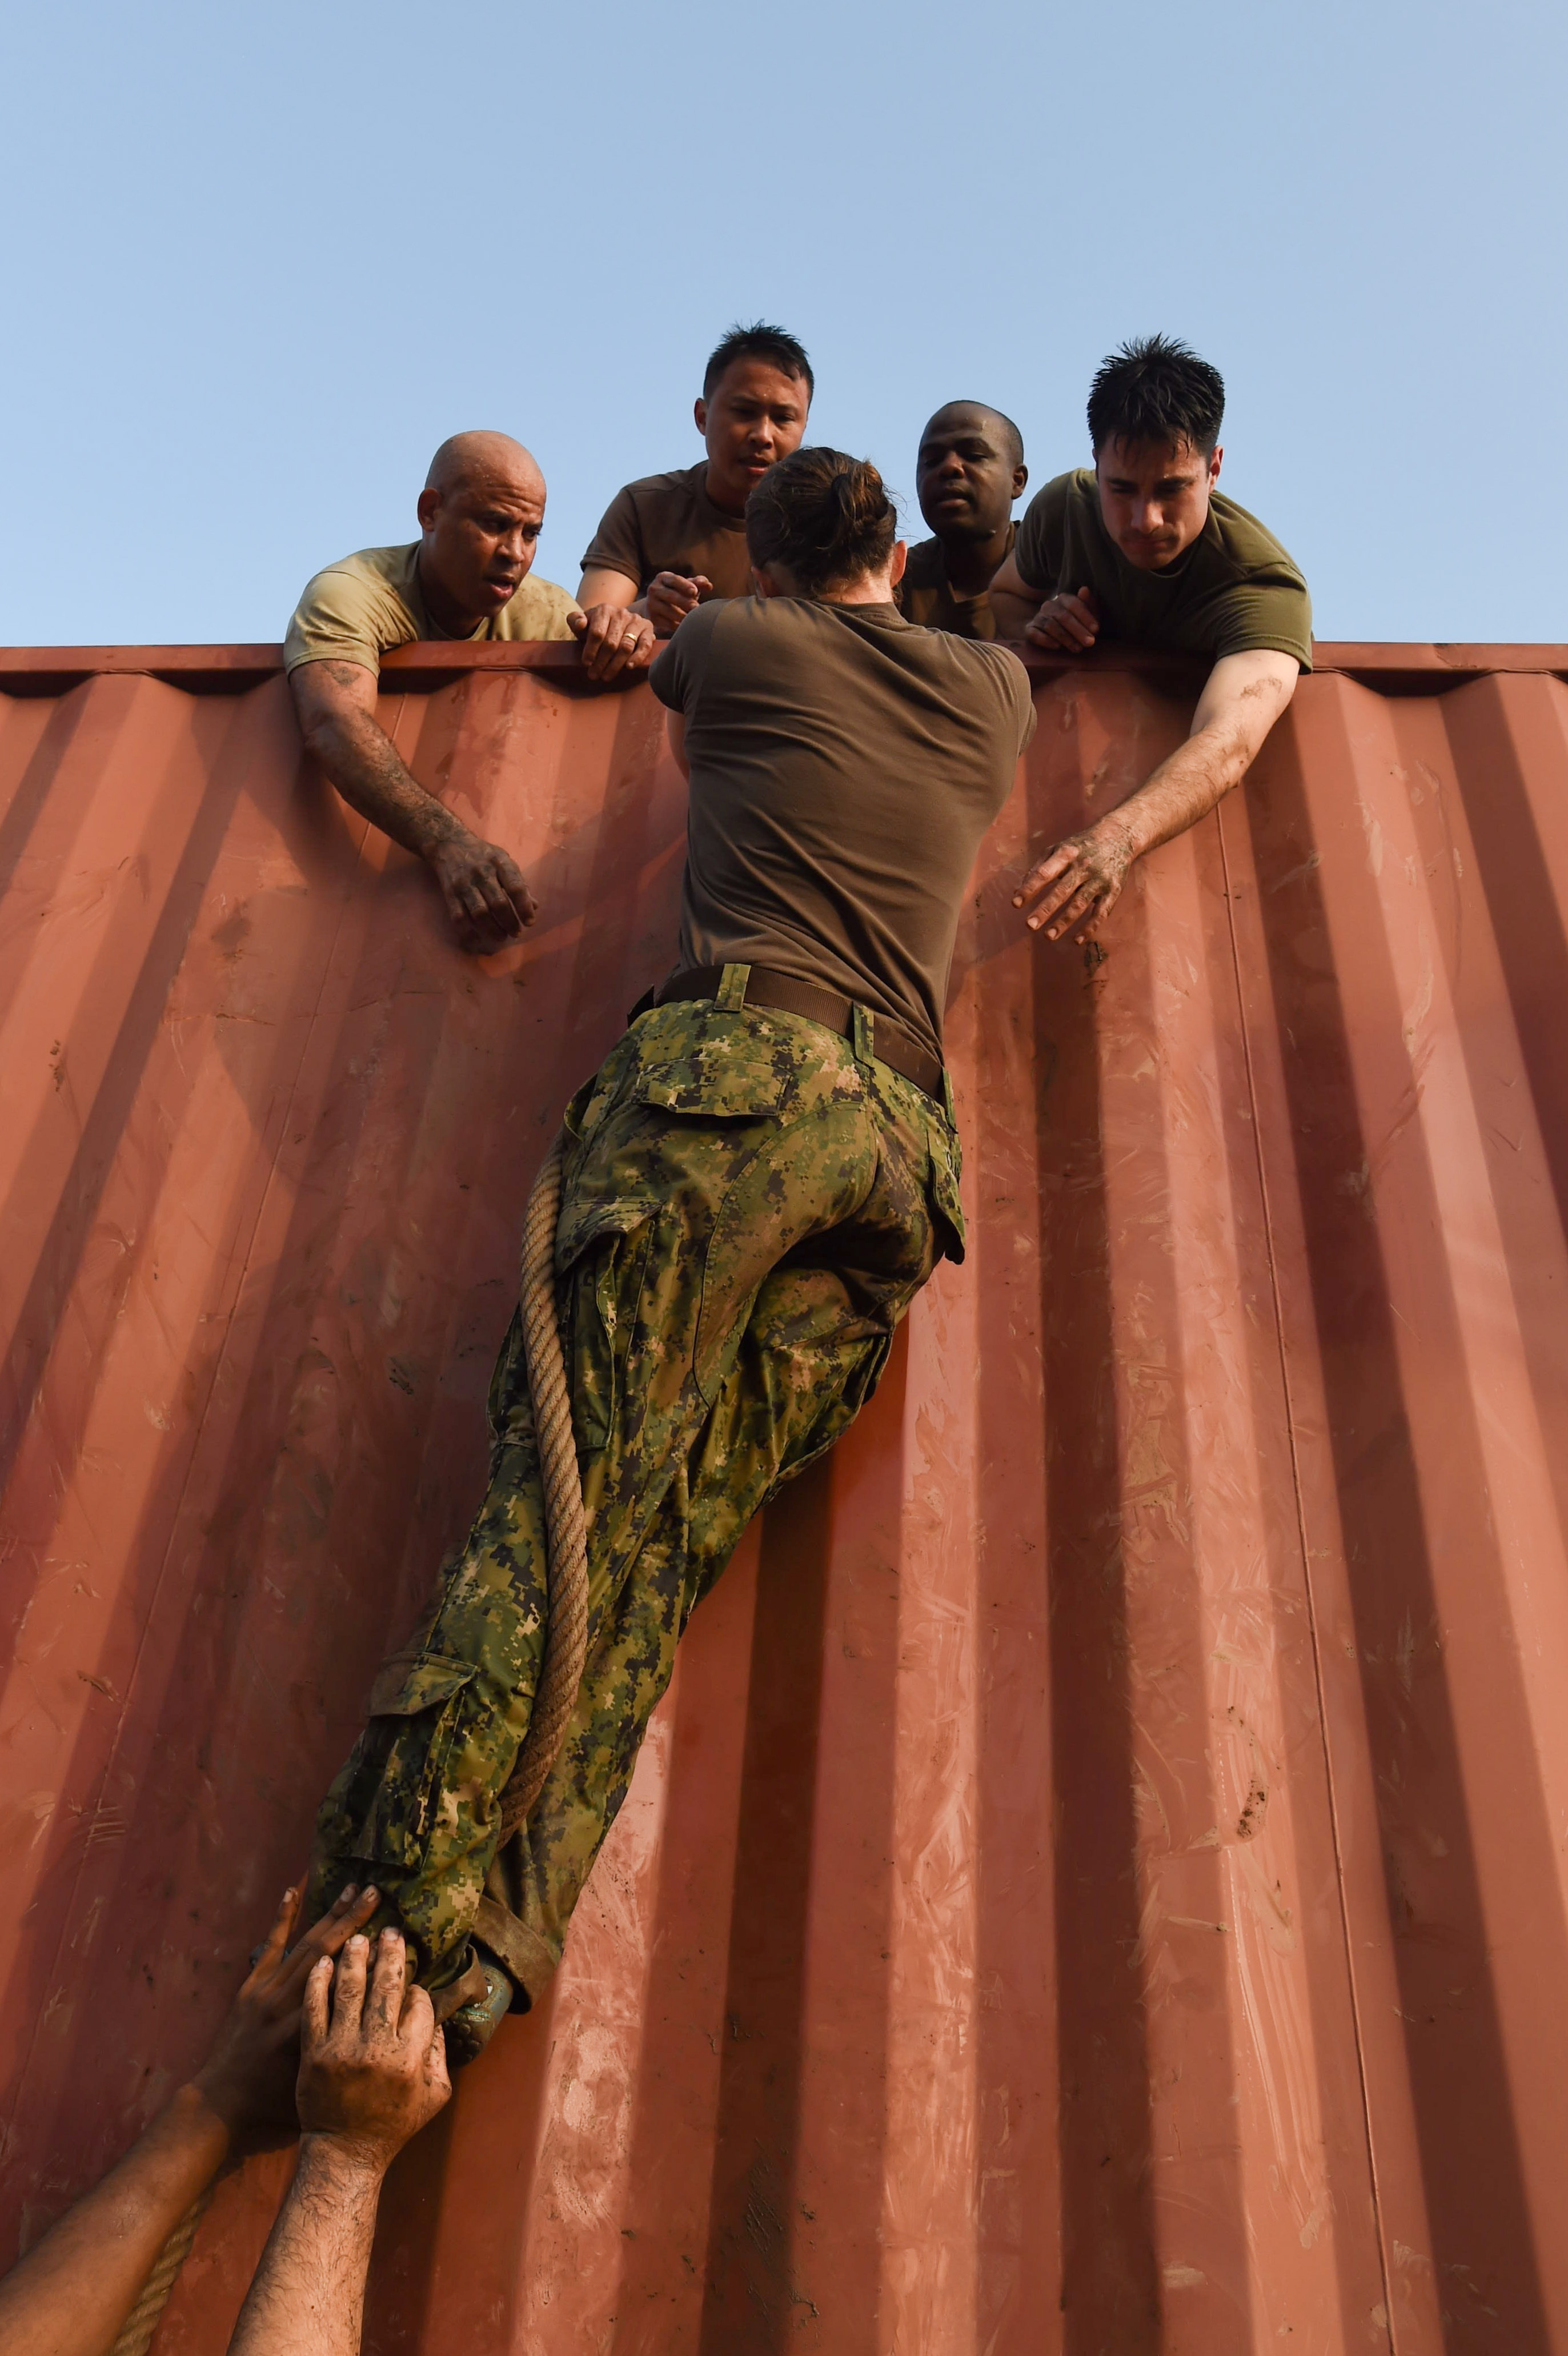 U.S. Navy Lt. Cmdr. Brighid Clark, Combined Joint Task Force-Horn of Africa Civil Affairs, pulls herself to the top of a rope climb with assistance from her team during a mud run hosted by the French military, Nov. 6, 2016, in Djibouti, Djibouti. The event allowed coalition forces from French, Japanese, and American teams to interact and build camaraderie while navigating a five kilometer course. The French 5th Marine Regiment team took first place. (U.S. Air Force photo by Staff Sgt. Penny Snoozy)